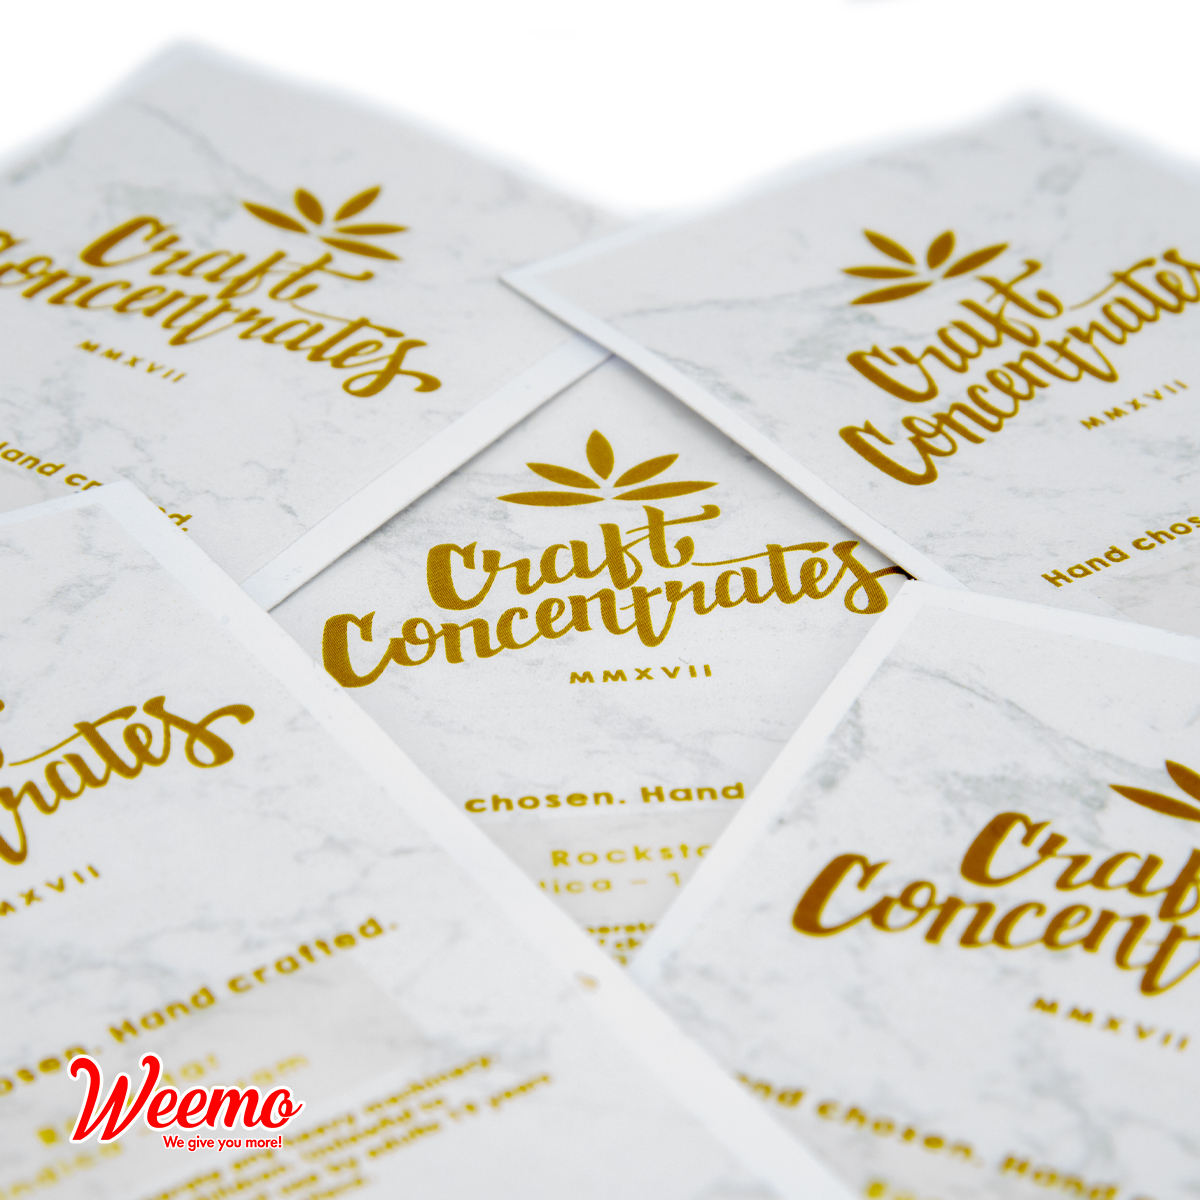 Craft Concentrates Shatter by Weemo - Image © 2020 Weemo. All Rights Reserved.